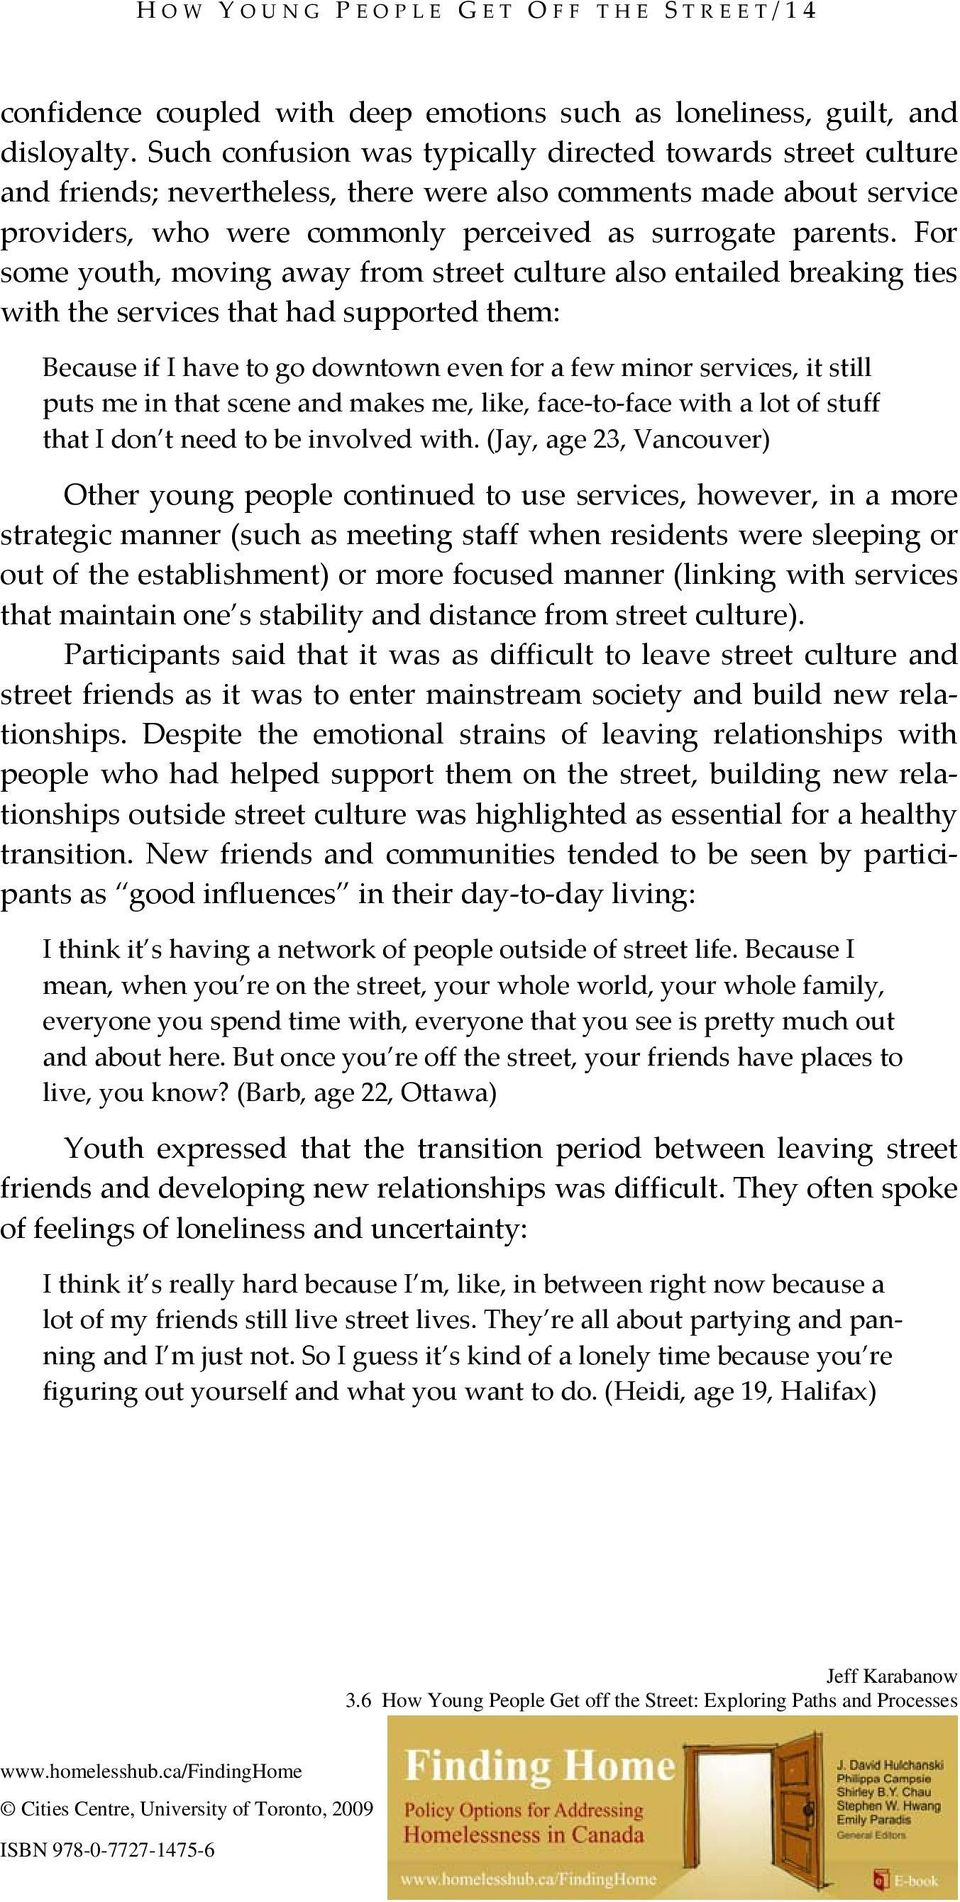 For some youth, moving away from street culture also entailed breaking ties with the services that had supported them: Because if I have to go downtown even for a few minor services, it still puts me